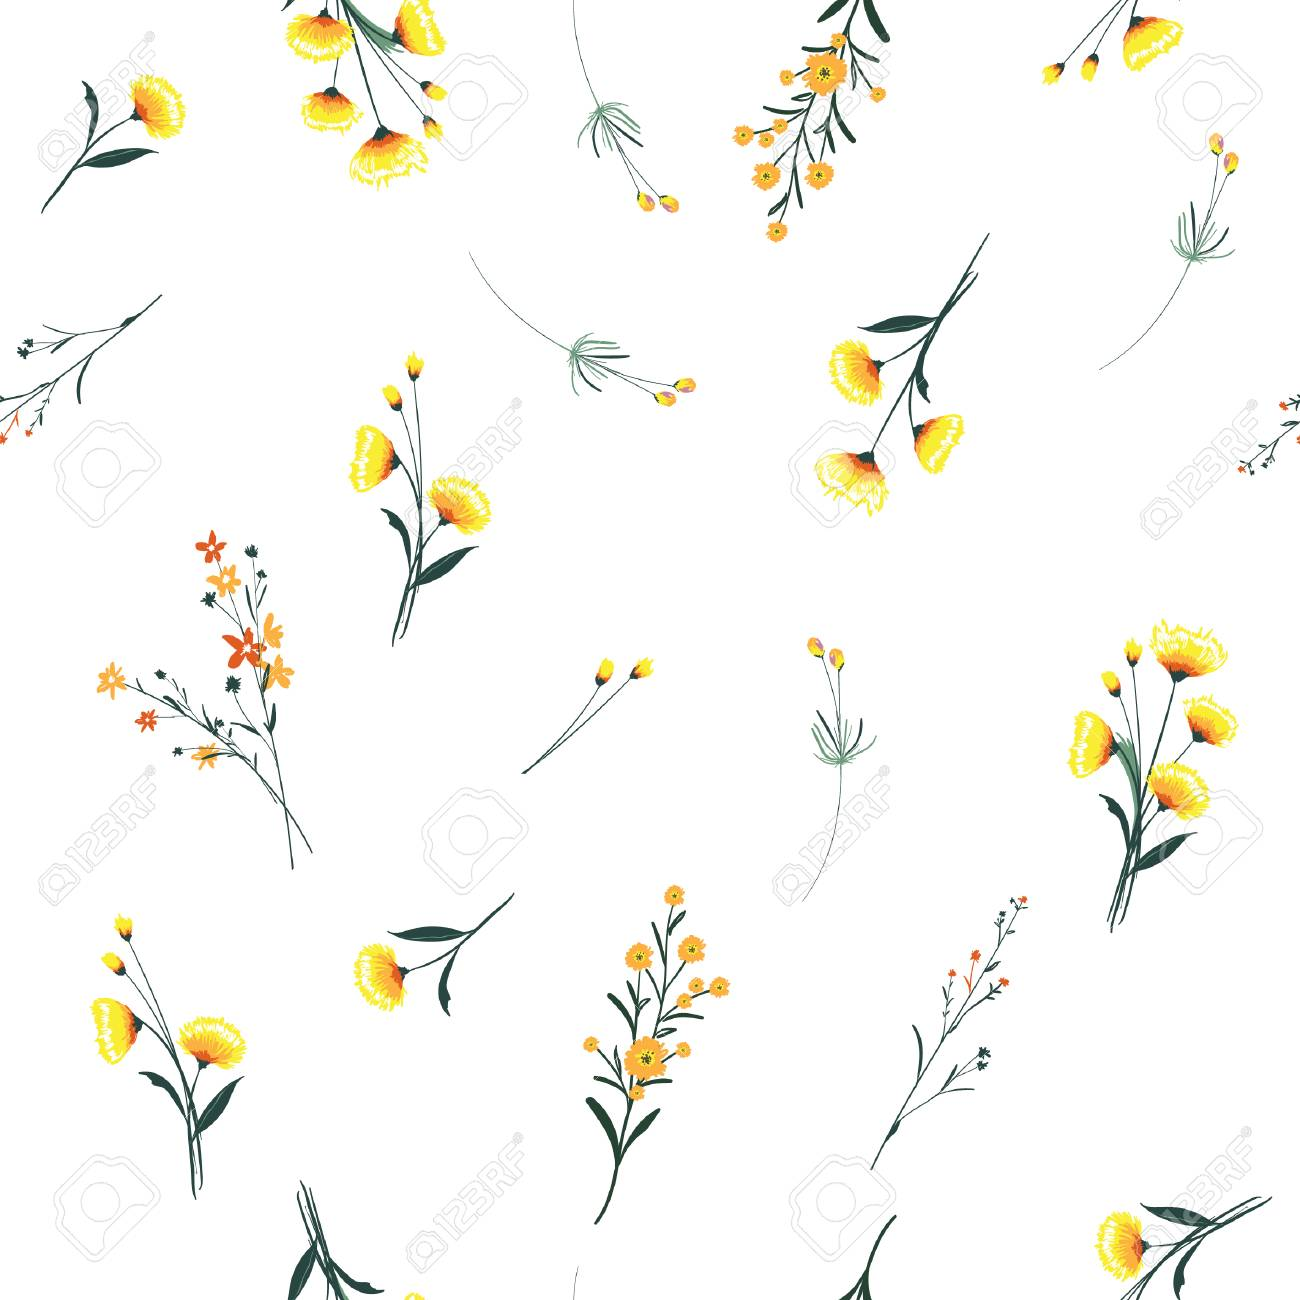 Trendy yellow wind blowing, floral pattern in the many kind of flowers. Wild botanical Motifs scattered Seamless vector texture. For fashion prints. Printing with in hand drawn style on white background. - 95251956